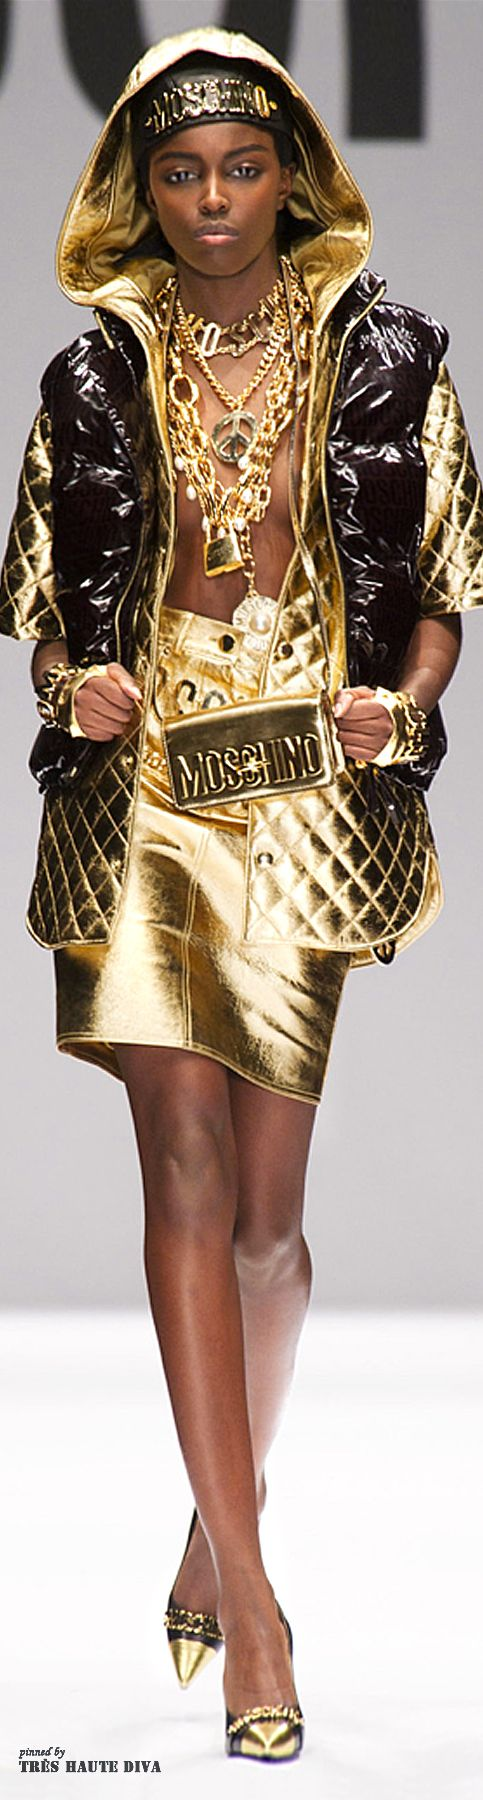 "#Milan Fashion Week Moschino Fall/Winter 2014 RTW  - not for everyone or all ages. But that person who can wear it, ""you know who you are""!"